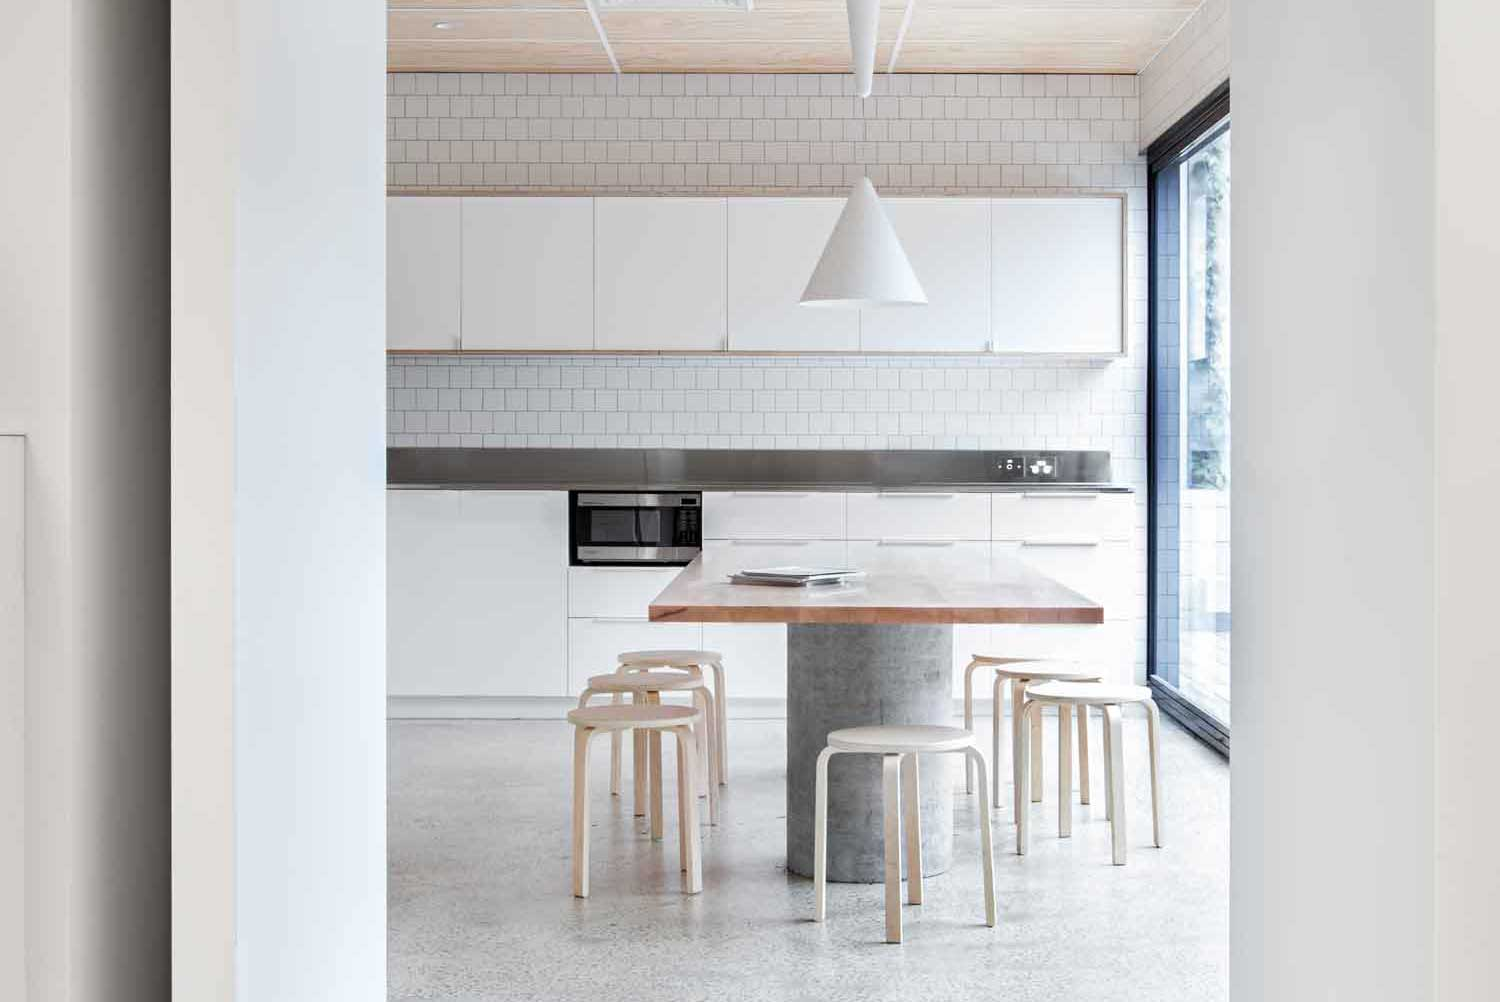 Blackwood Street Bunker by Clare Cousins Architects   Yellowtrace.